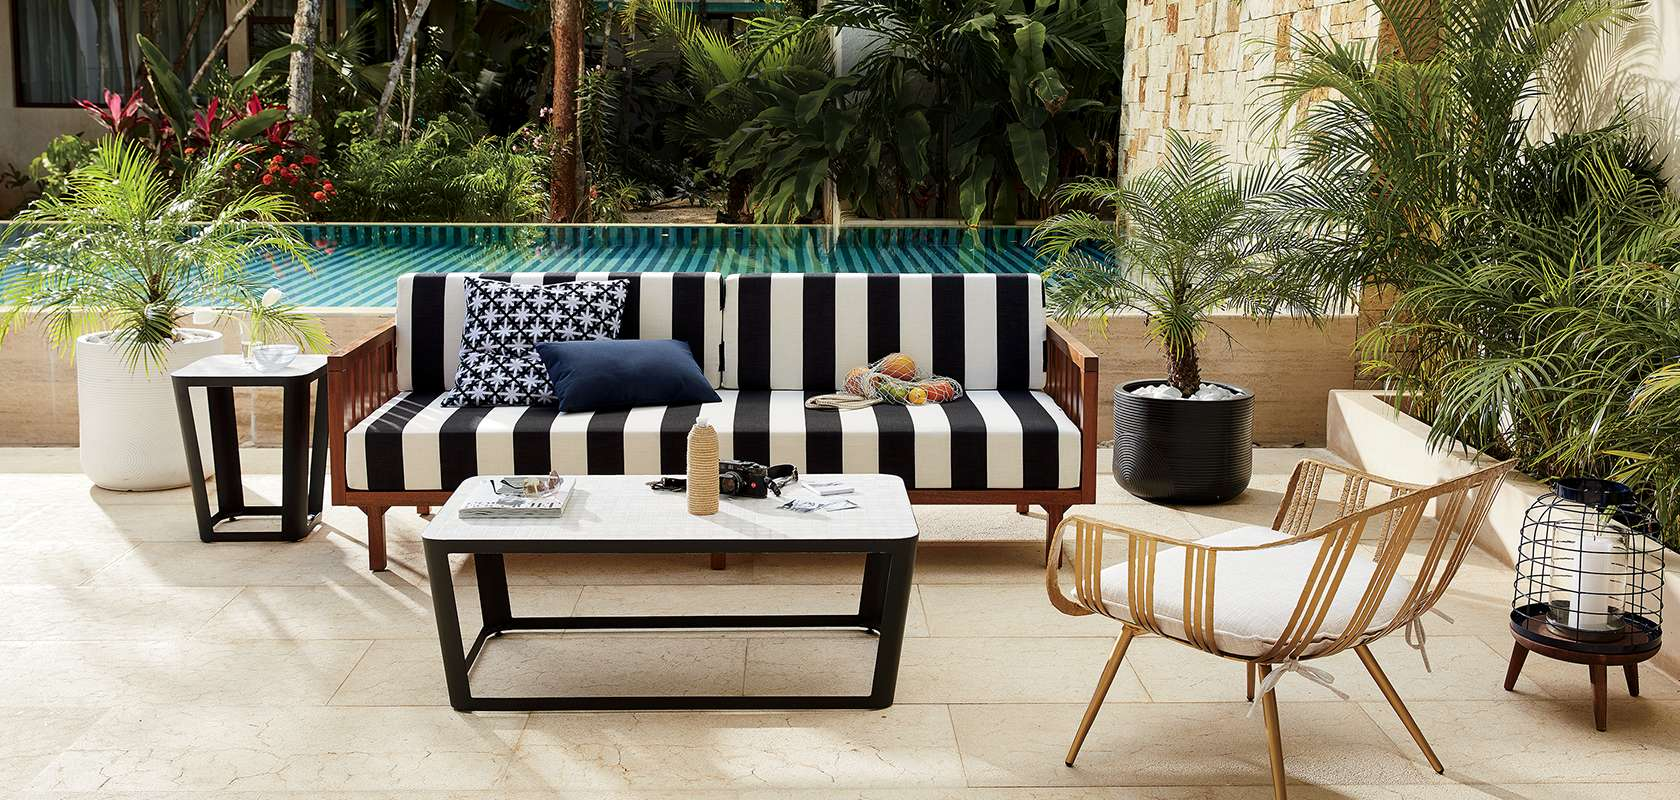 up to 30% off select outdoor furniture